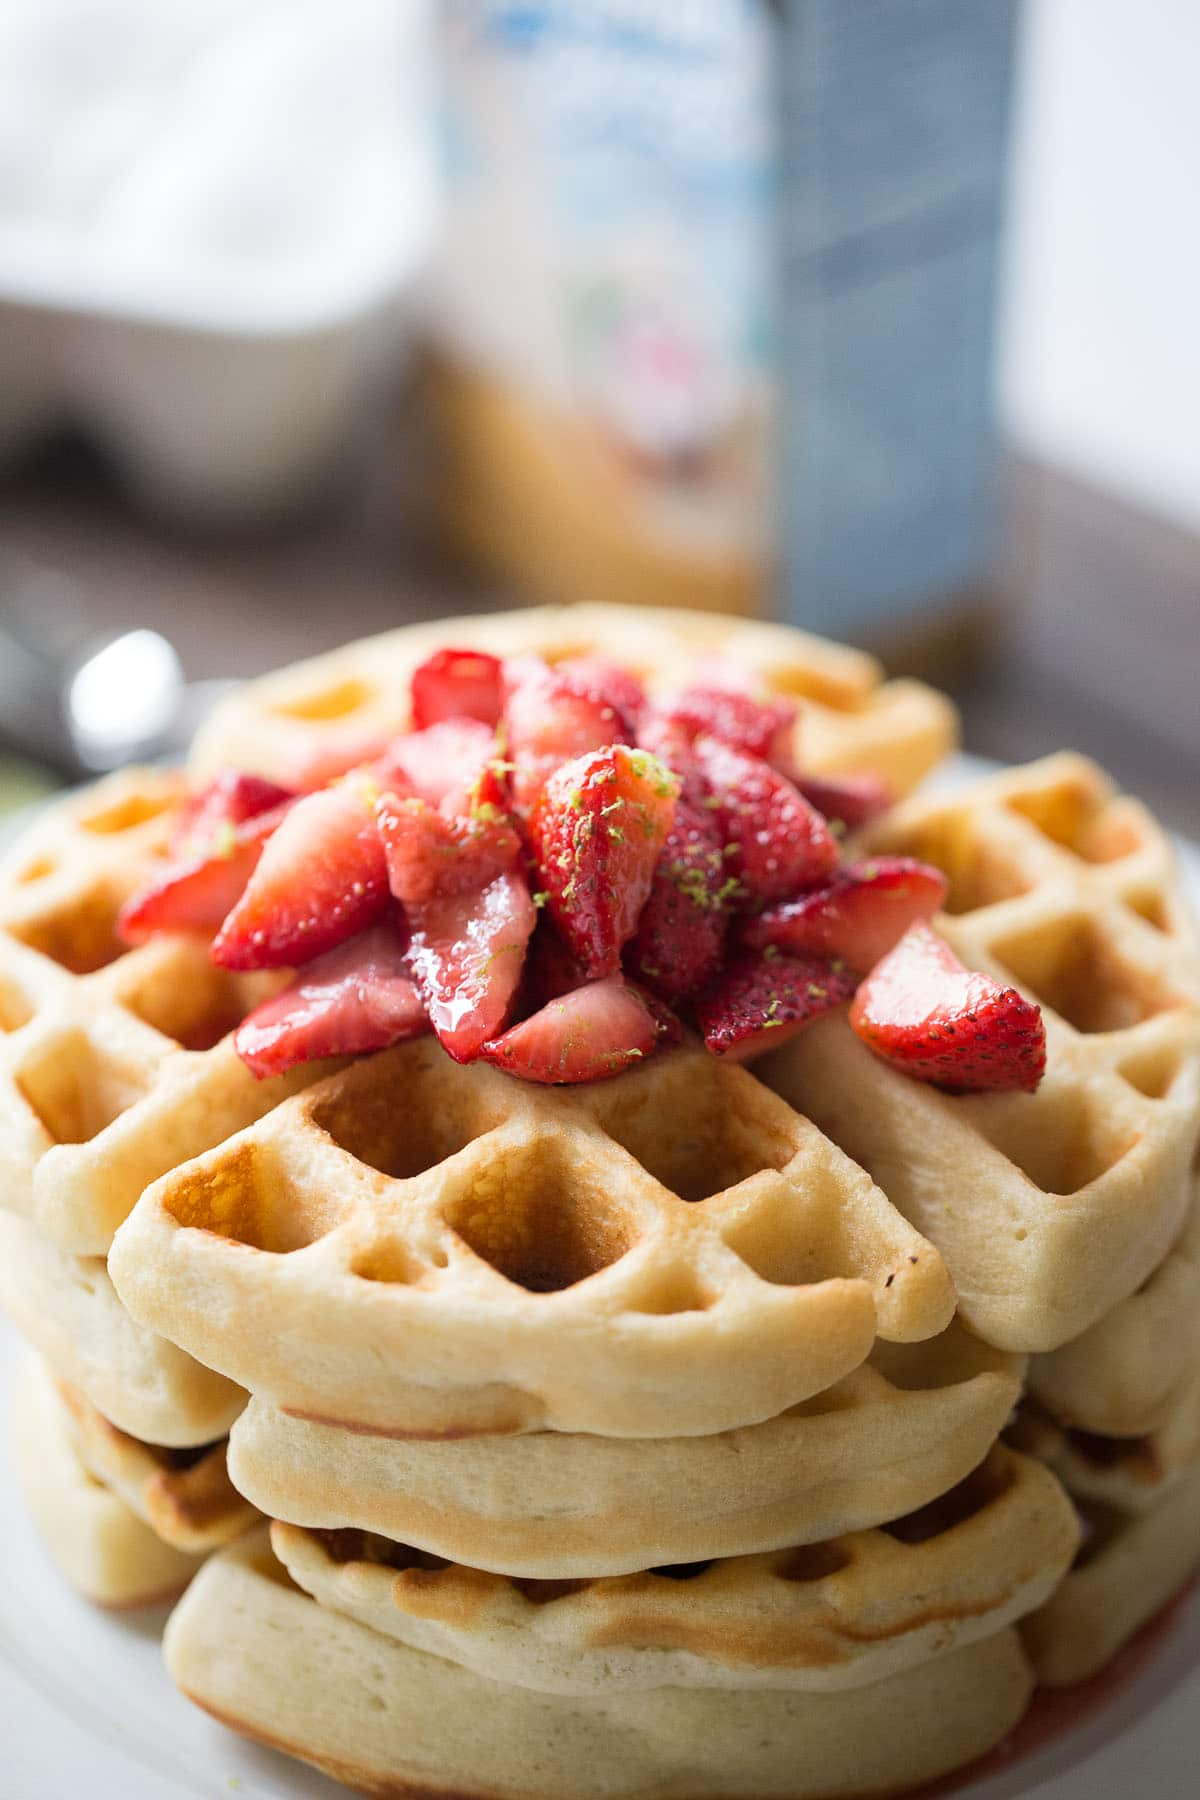 This key lime Belgian waffle recipe with it's fresh strawberry sauce are perfect for special occasions or lazy mornings!